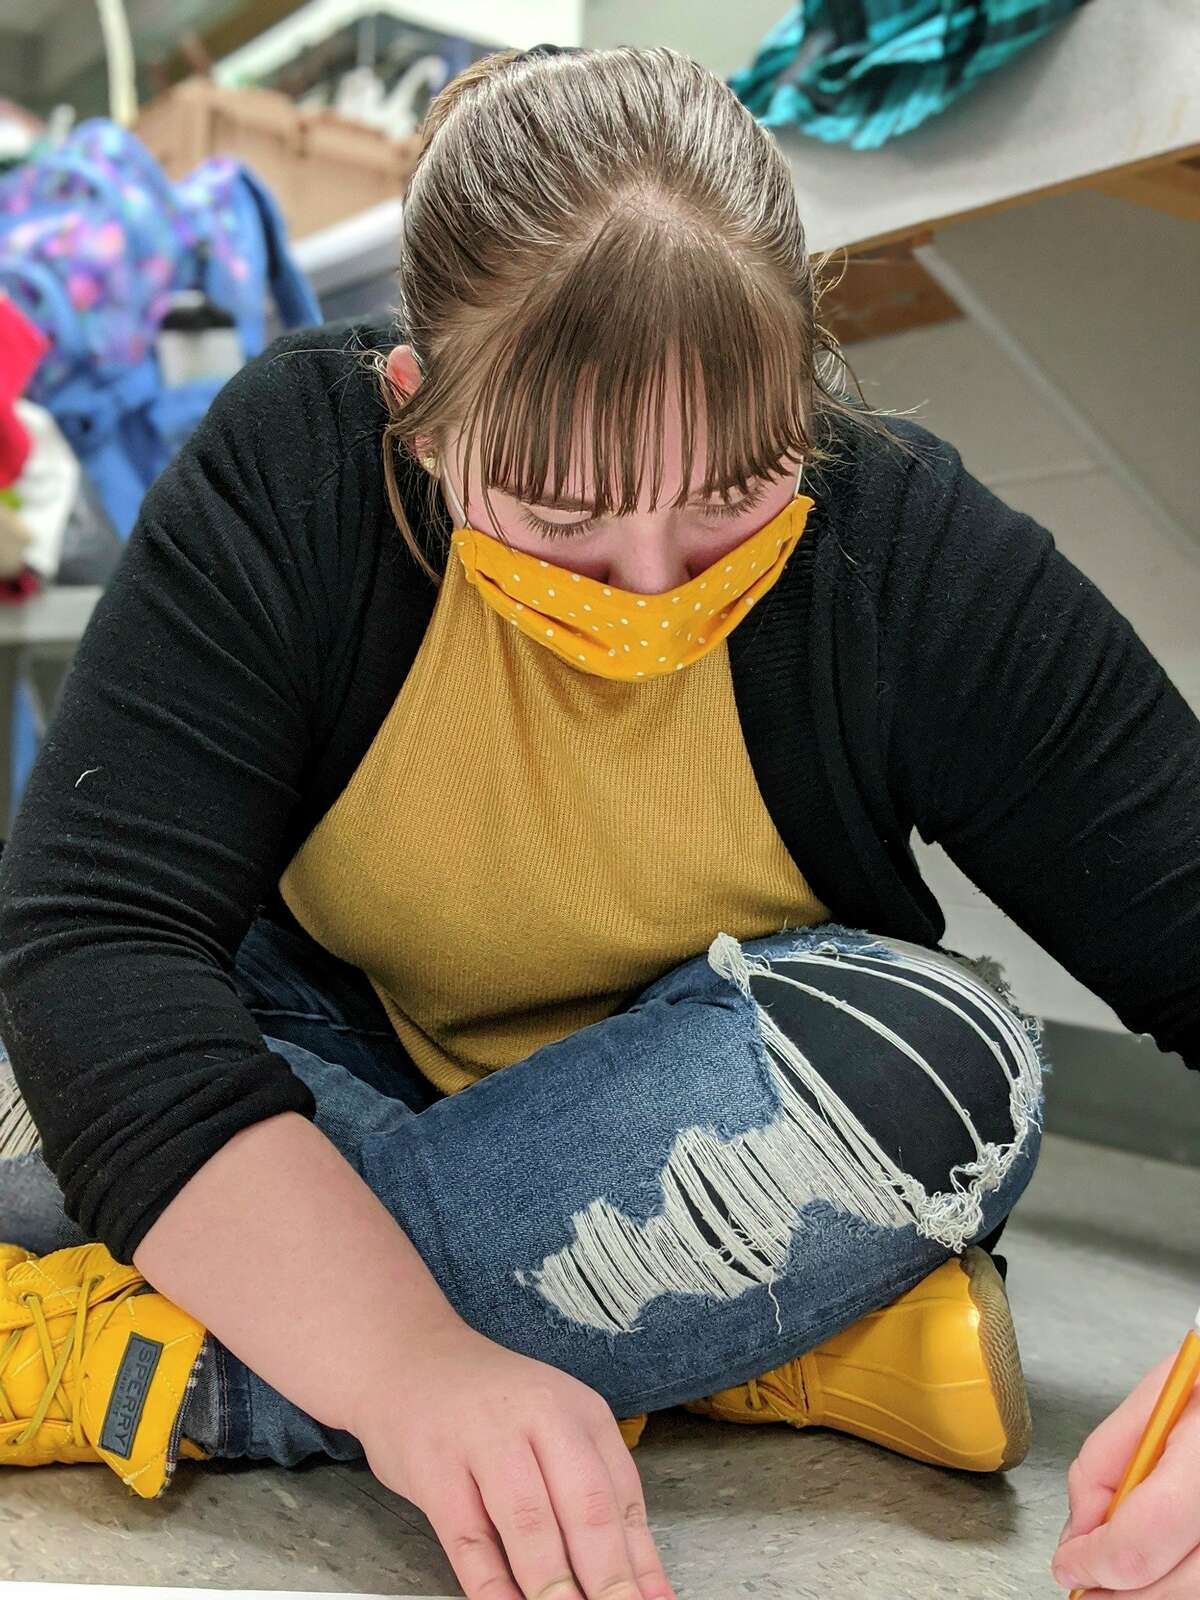 Emma Mondrella, a Big Rapids High School student and technician for the production, gets to work designing costumes. There will be approximately 50 costumes throughout the course of the production. (Courtesy photo)